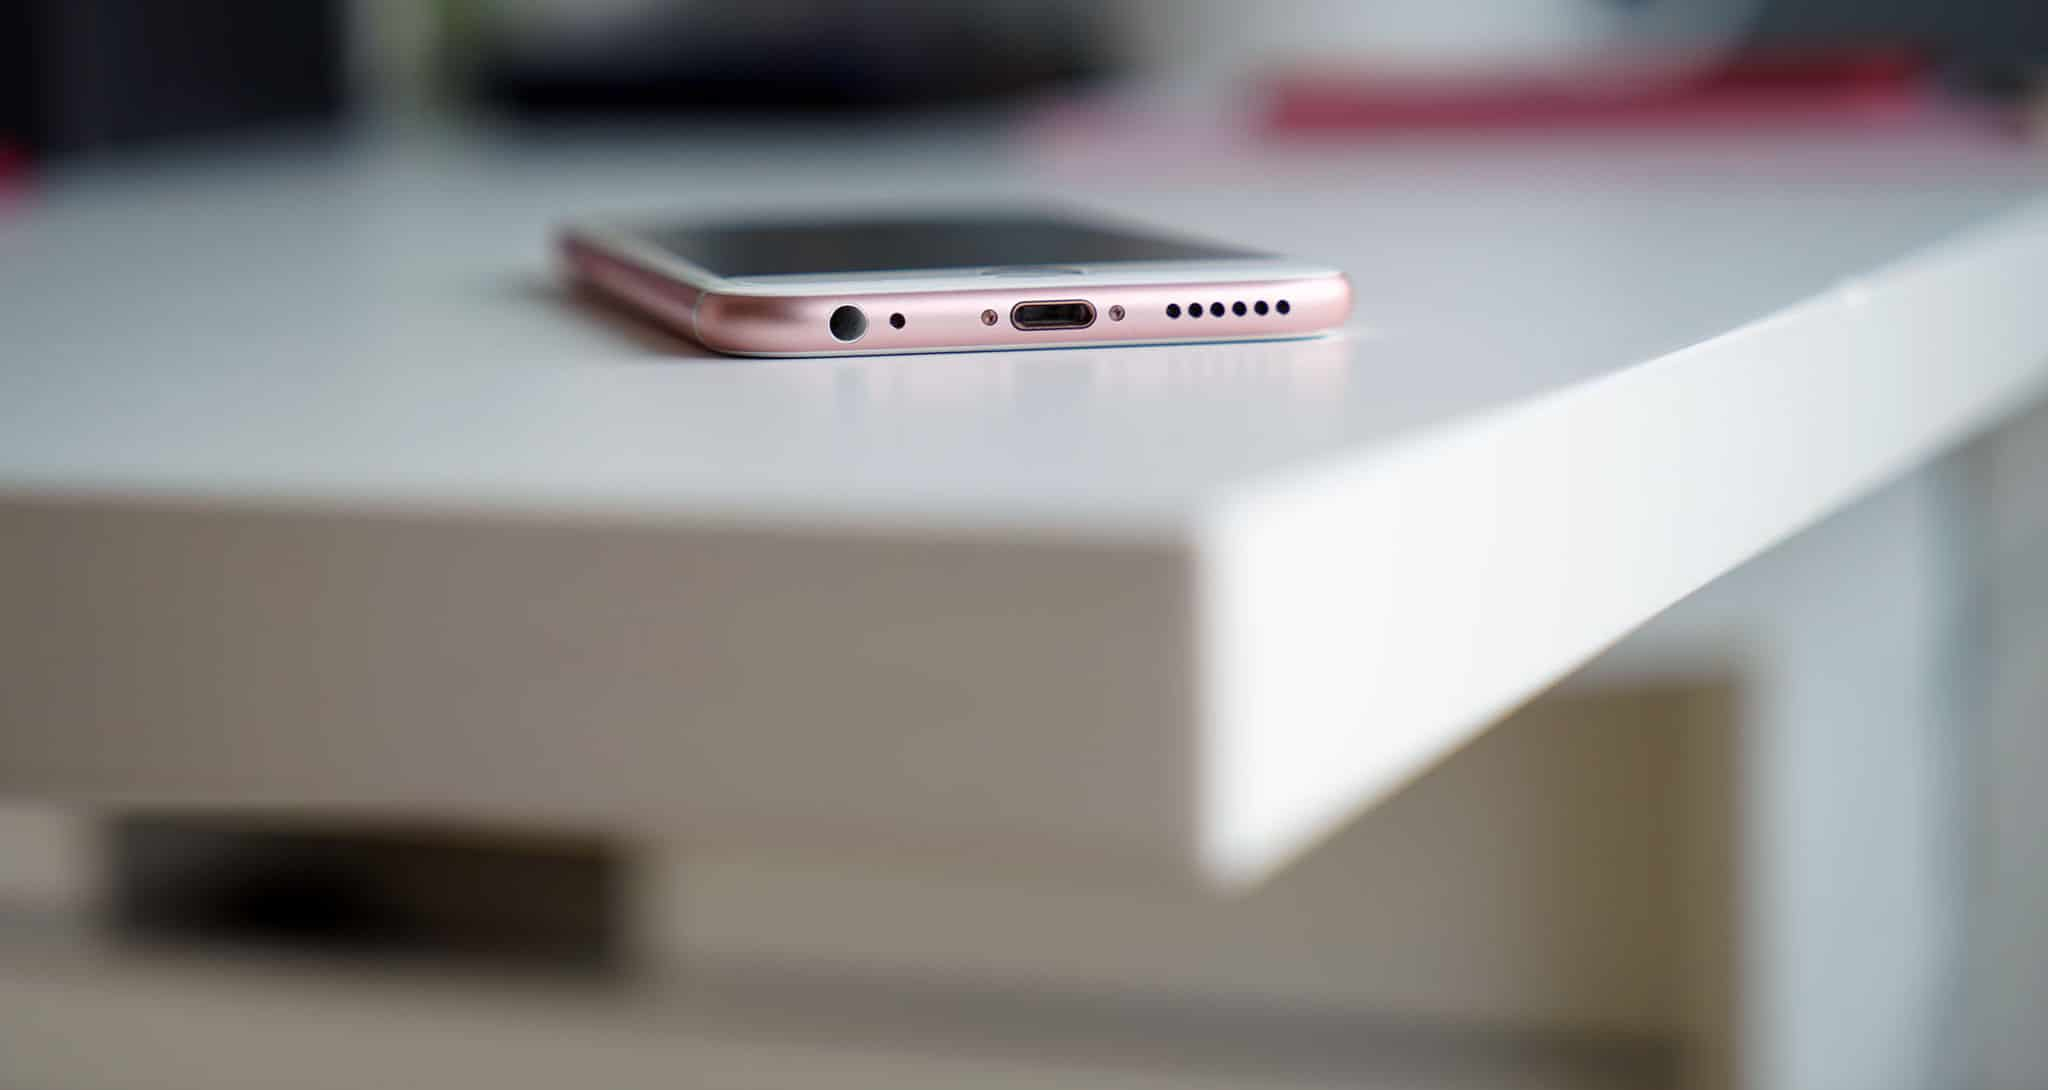 Iphone 8 Rumored To Have Usb C Charging Port Gadgetmatch